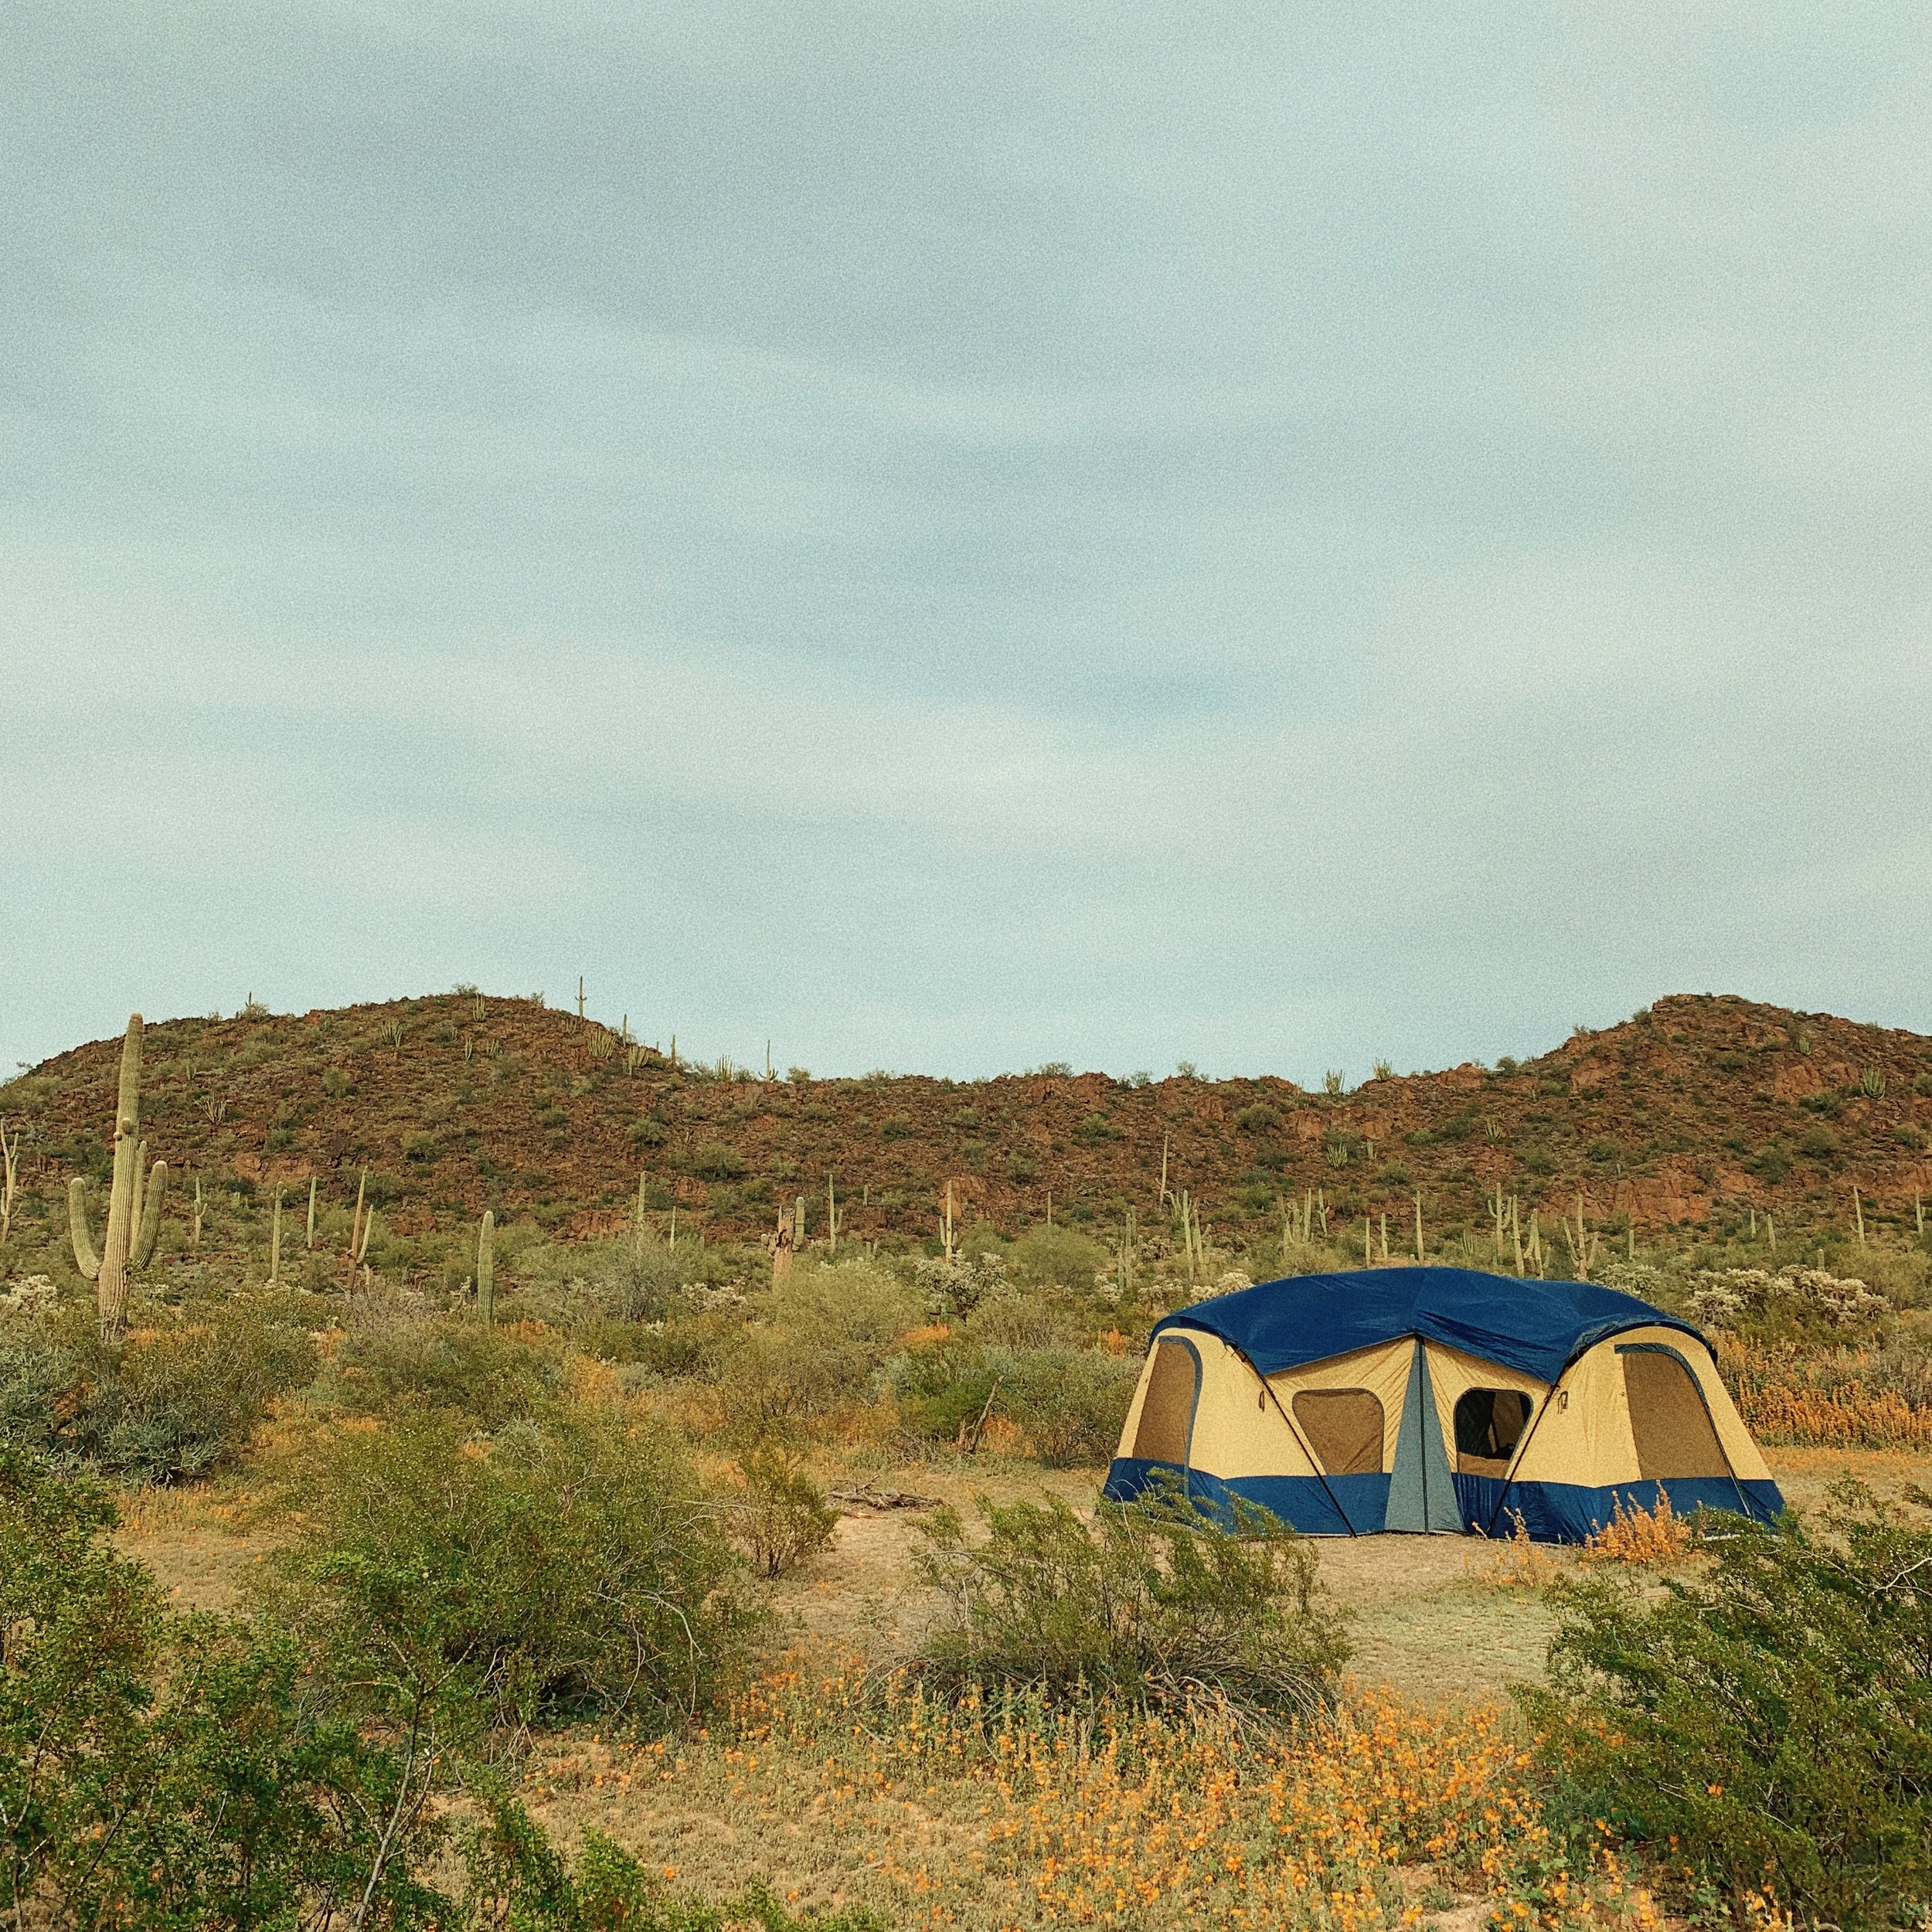 our tent, tohono o'odam nation, 2019